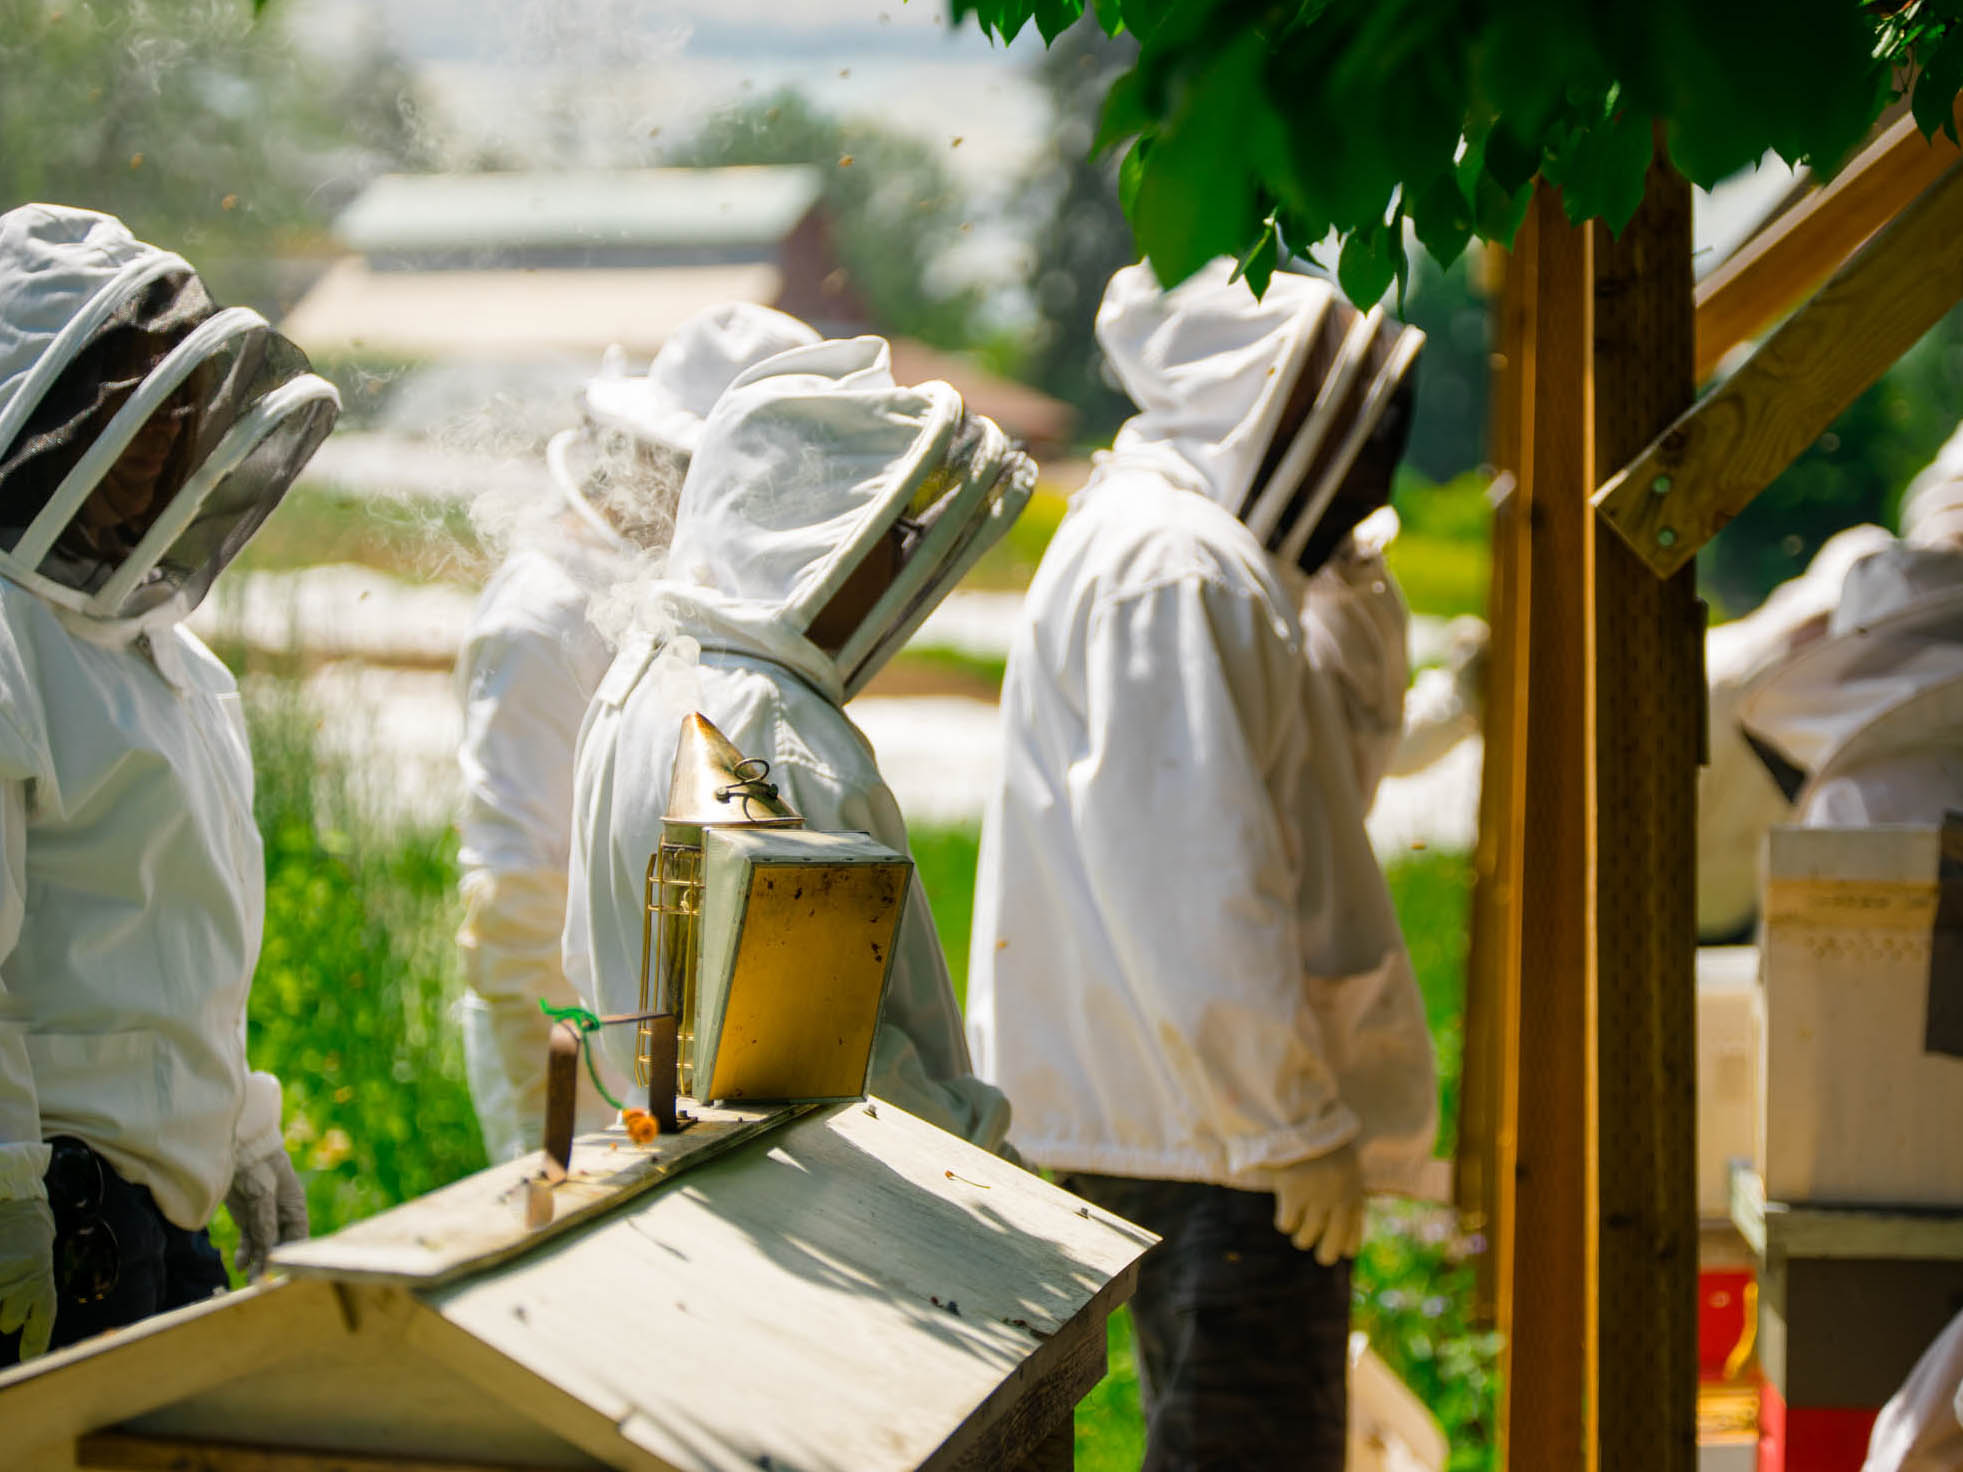 FABQs: Is Beekeeping Legal in My Area? - by Bee & Bloom